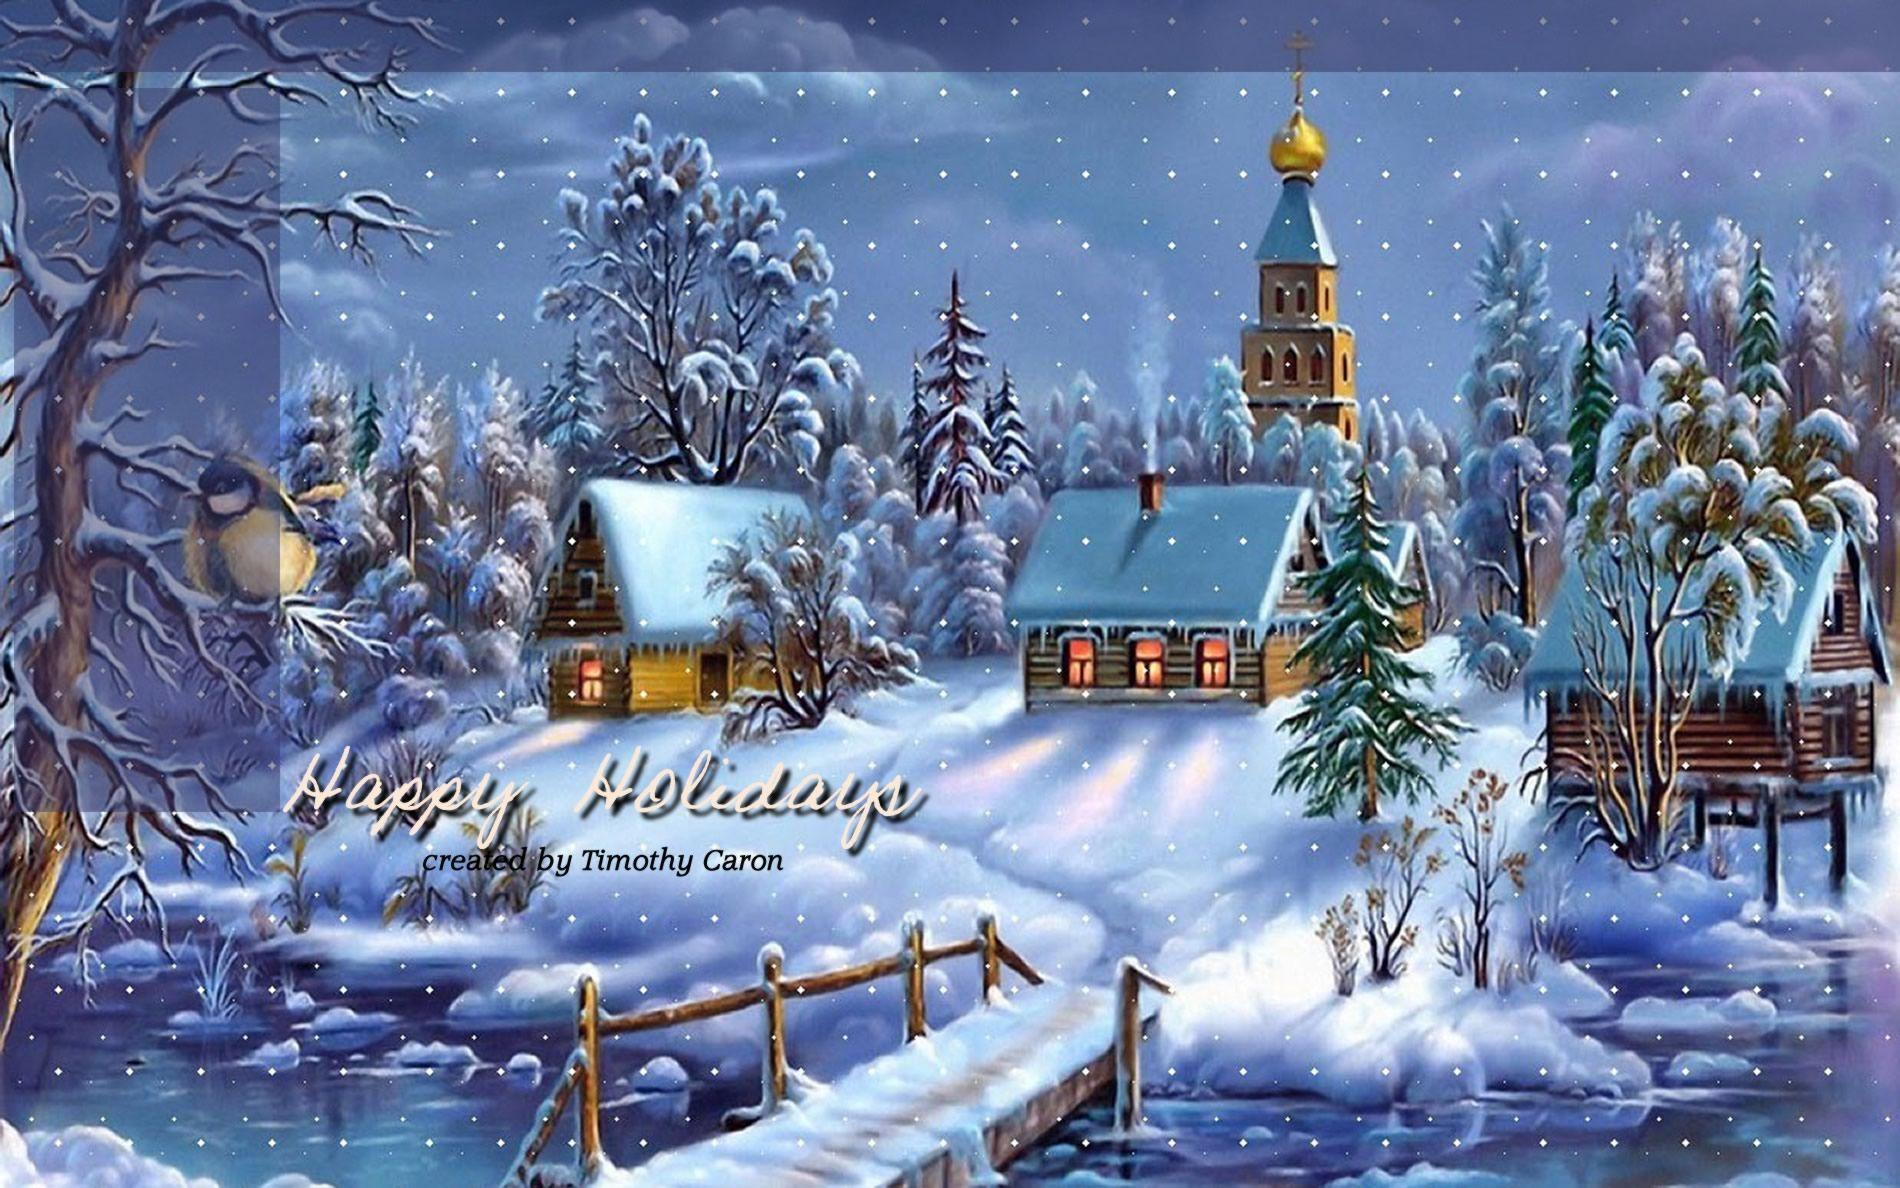 Desktop wallpapers holiday free - Handsome Holiday Desktop Wallpaper Free 1900x1188px Free Holiday